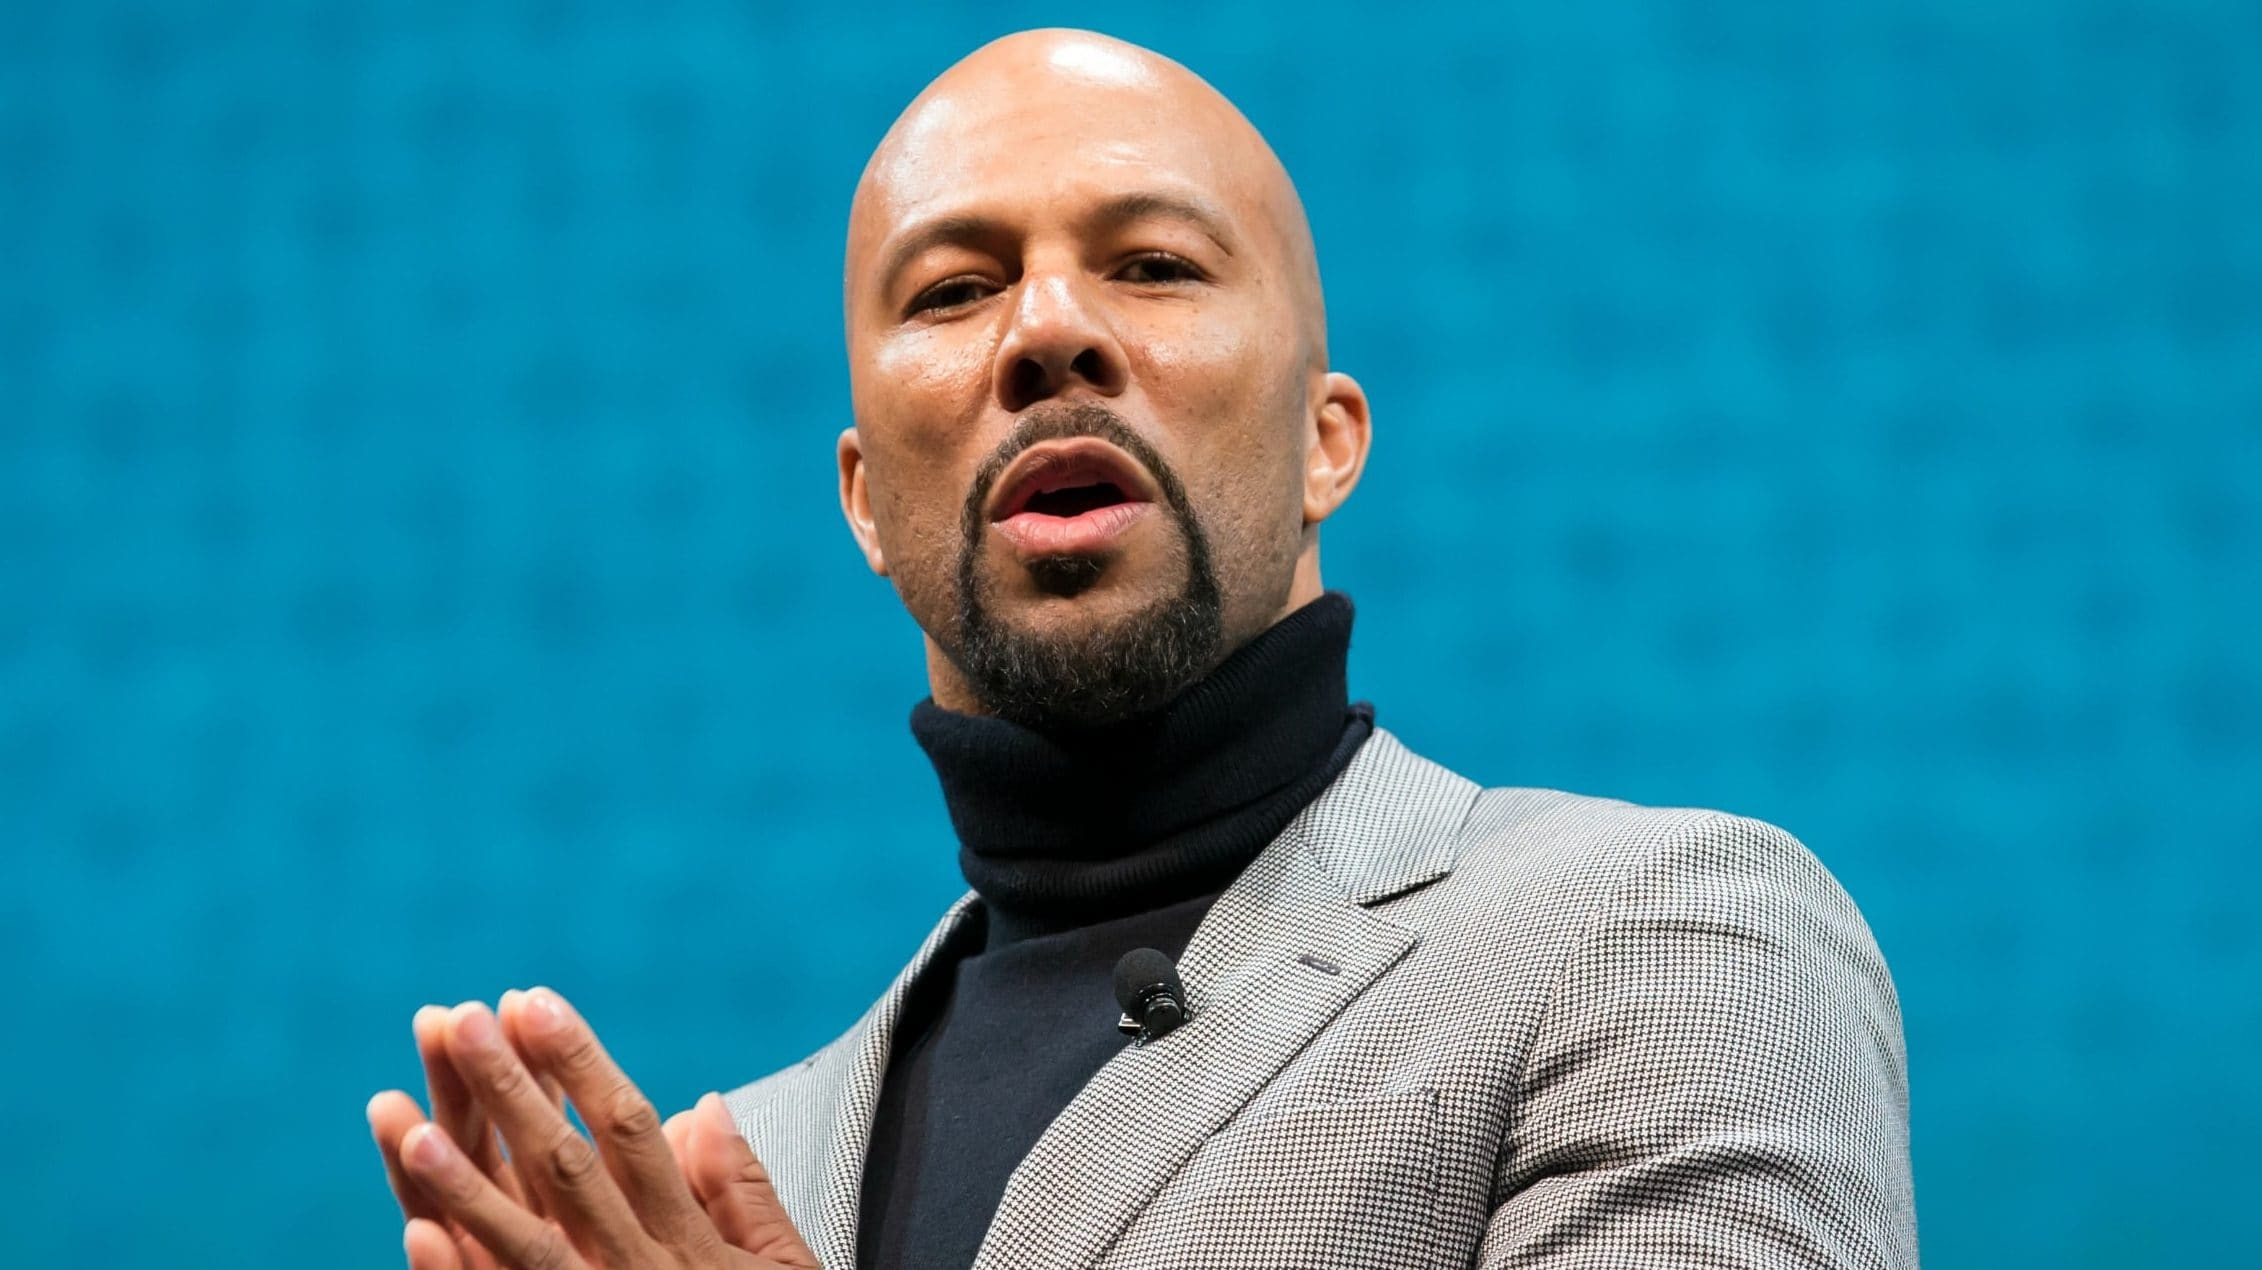 Common wants Travis Scott would pull out of Super Bowl Halftime Show